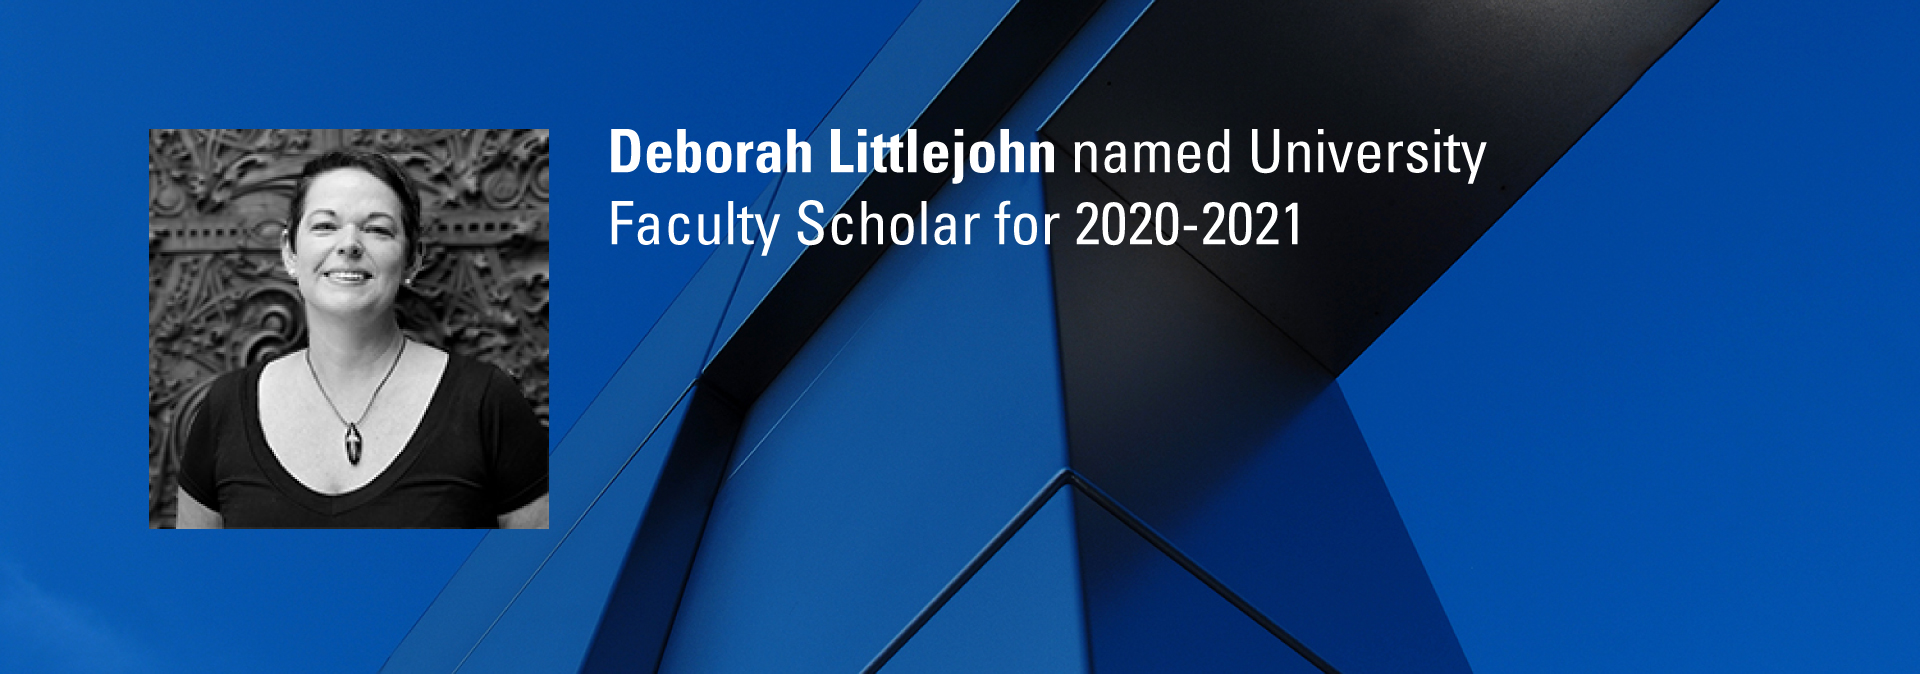 Deborah Littlejohn, associate professor of graphic design was recently named a University Faculty Scholar for 2020-2021. These 21 early- and mid-career faculty receive this designation in recognition of their outstanding academic achievements and contributions to NC State through their teaching, scholarship and service to the university and beyond.